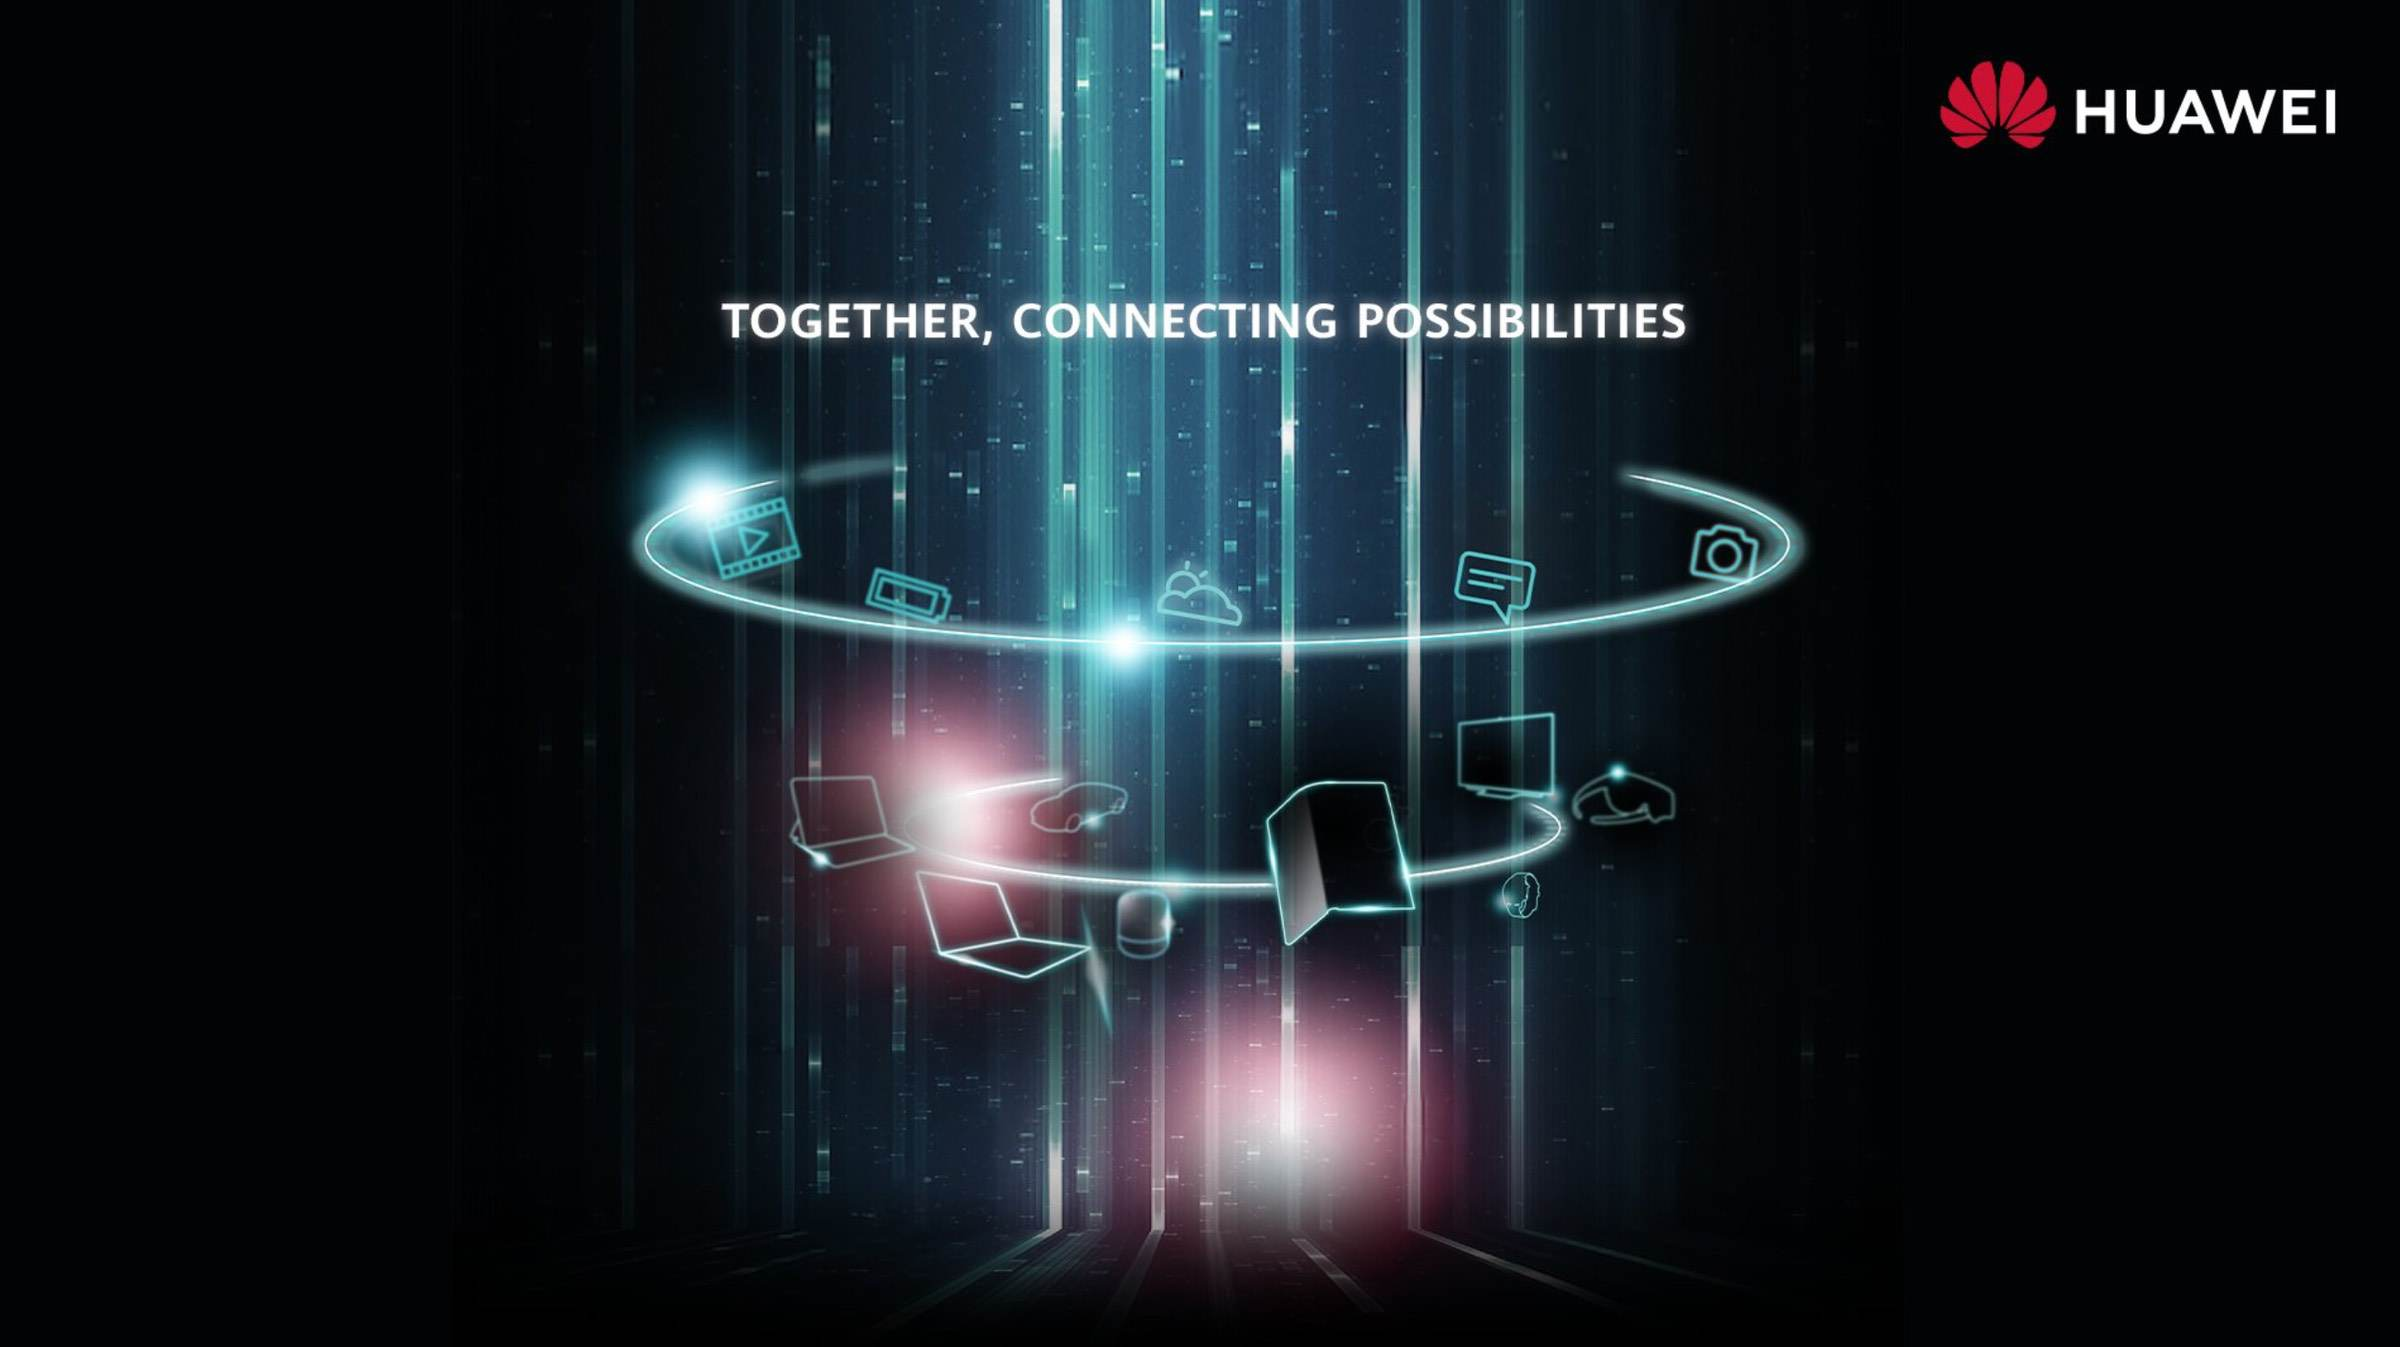 Huawei Together Connecting Possibilities #noMWC